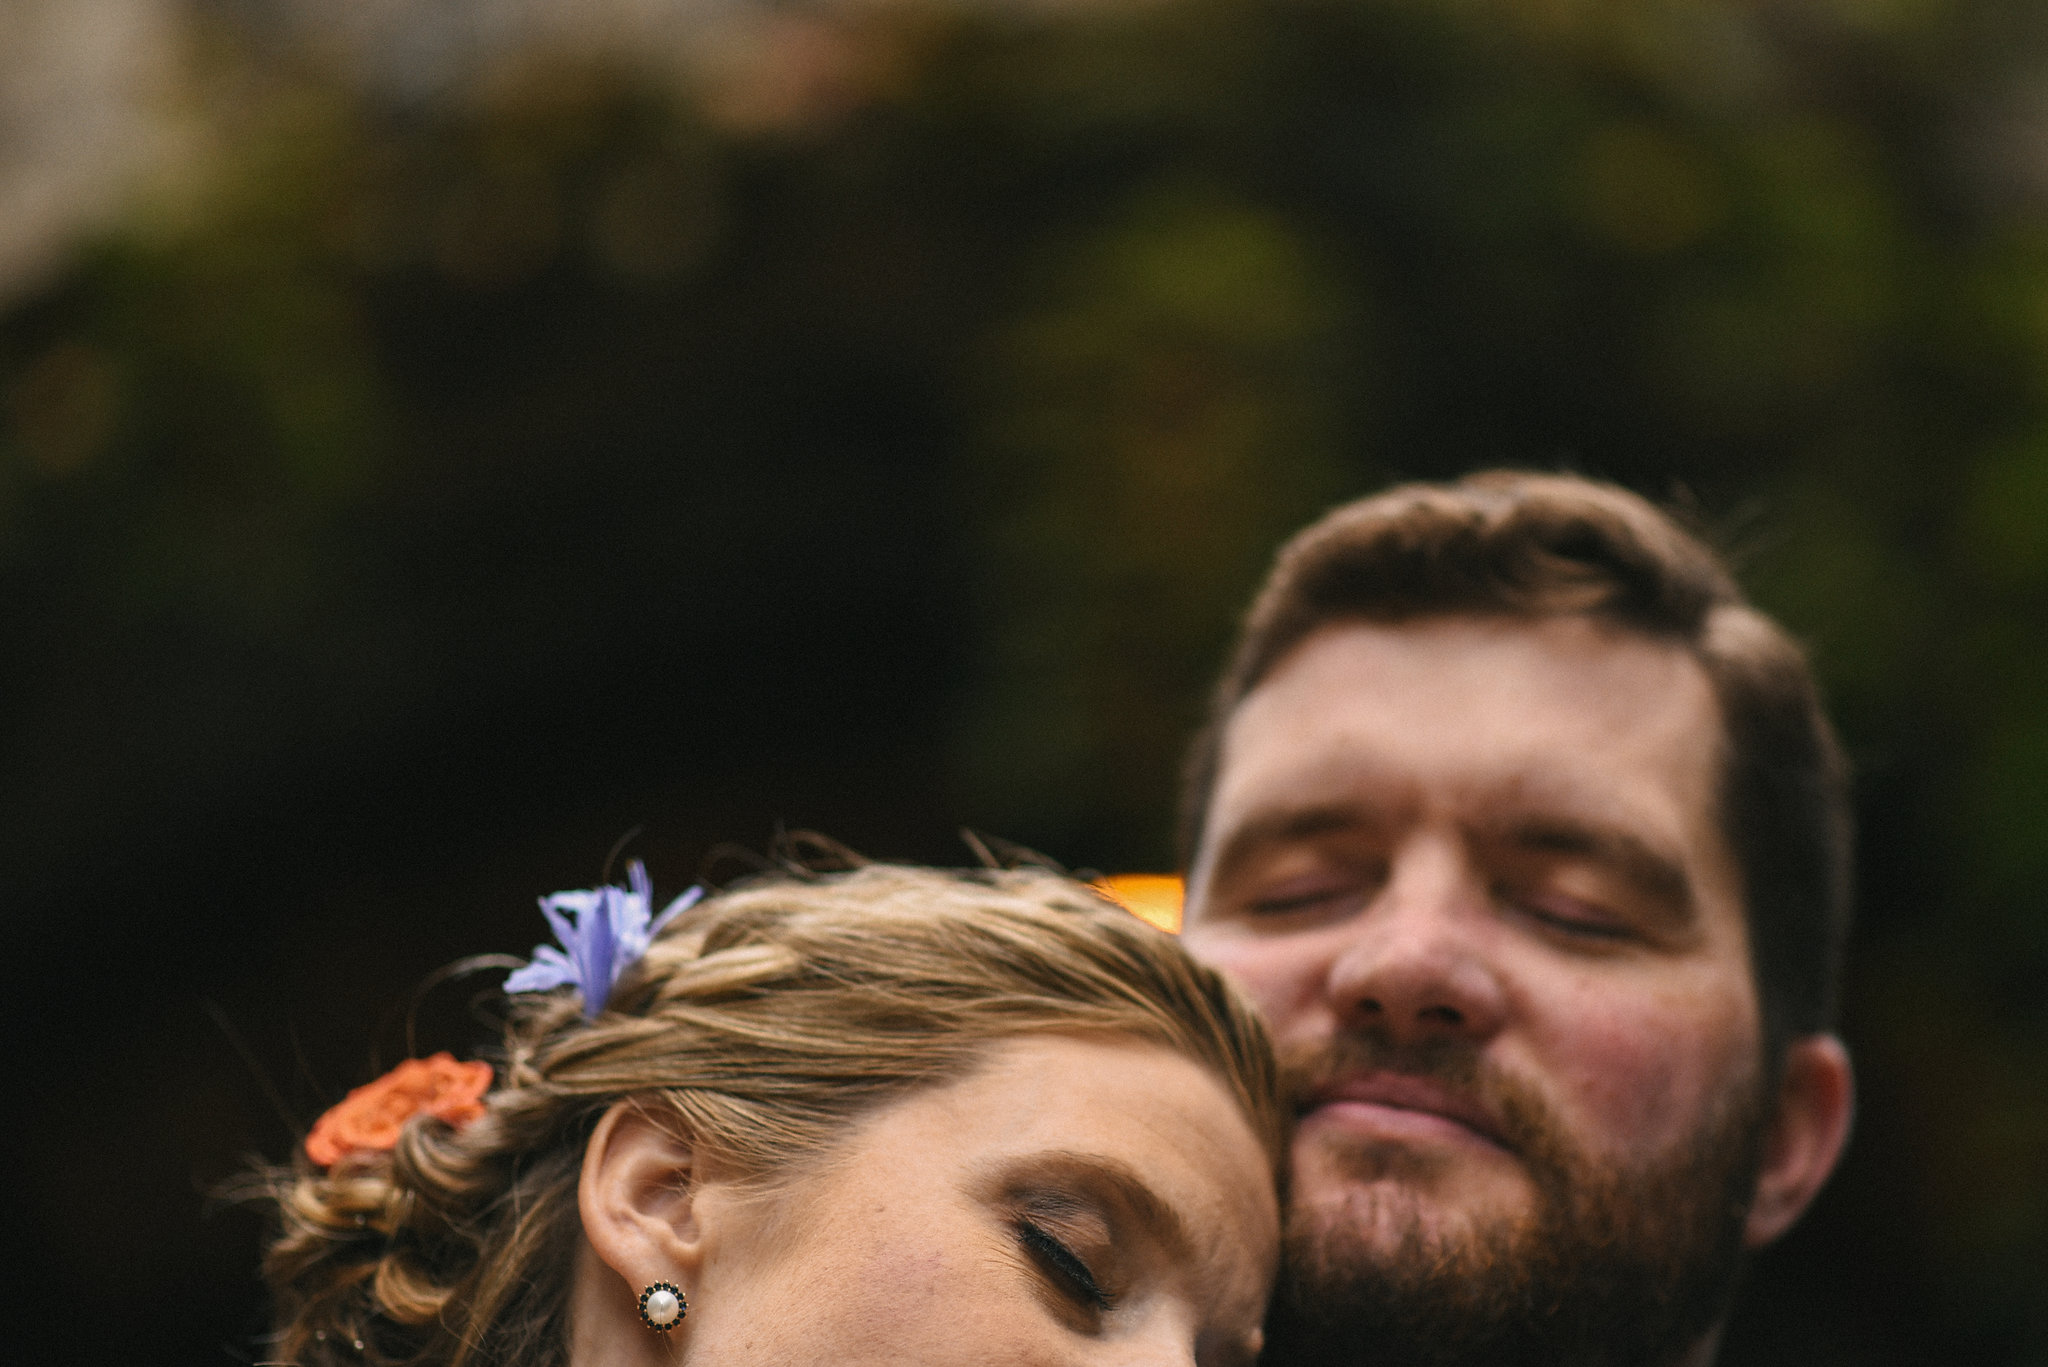 Alexandria, Virginia, Fall Wedding, Old Town, DC, Wilkes Street Tunnel, Romantic, Secluded Moments, The Enchanted Florist